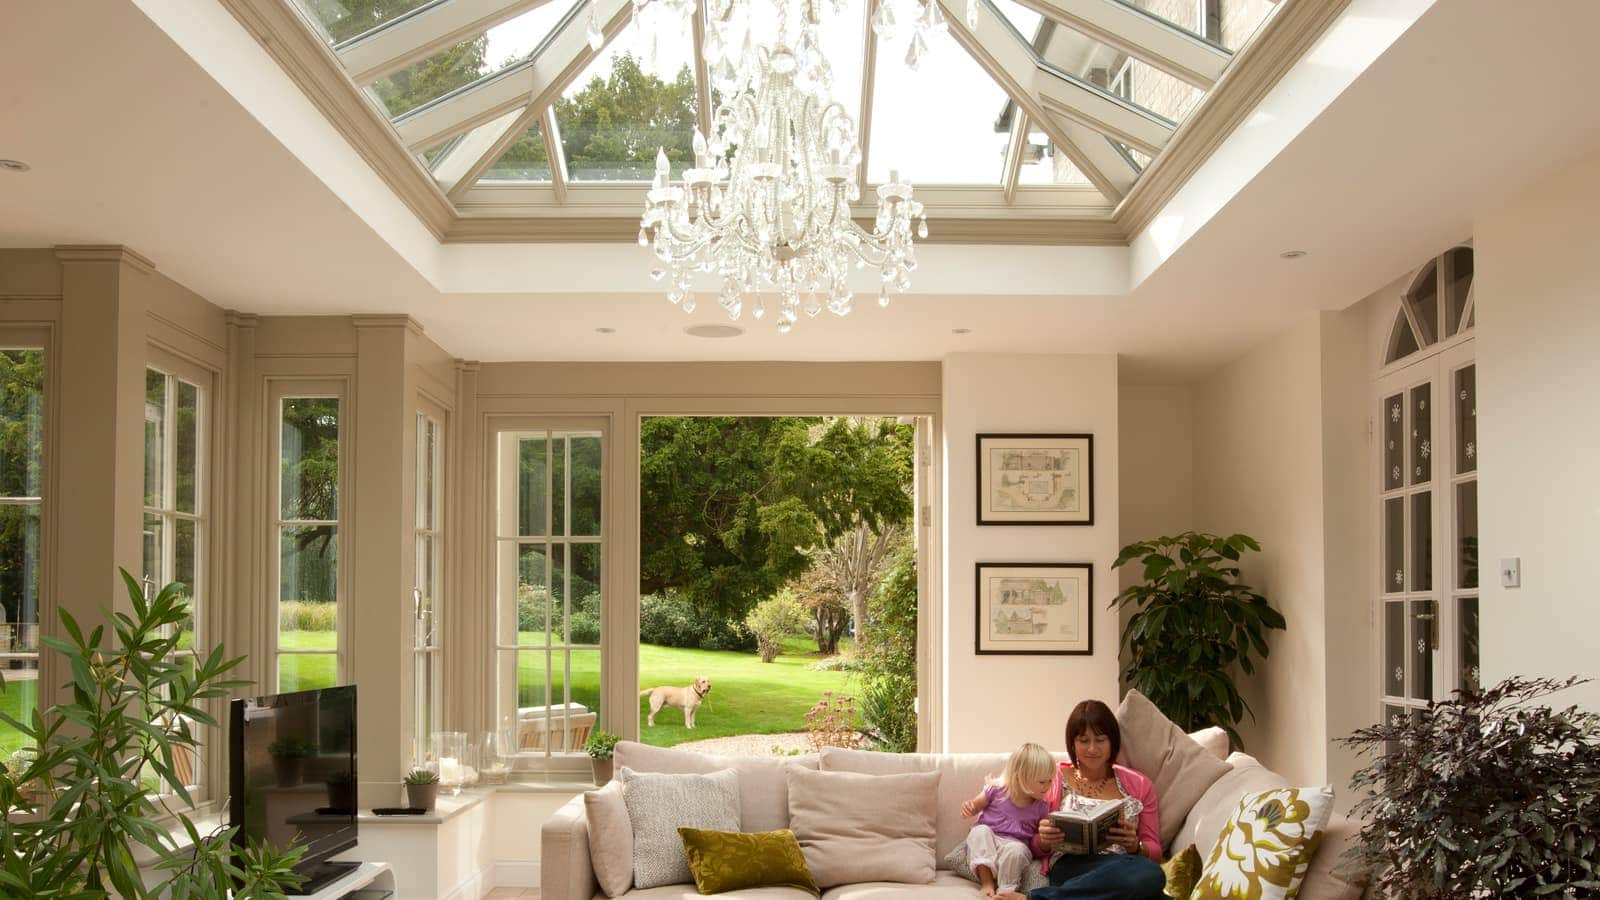 Orangery designed to add warmth to the interior space